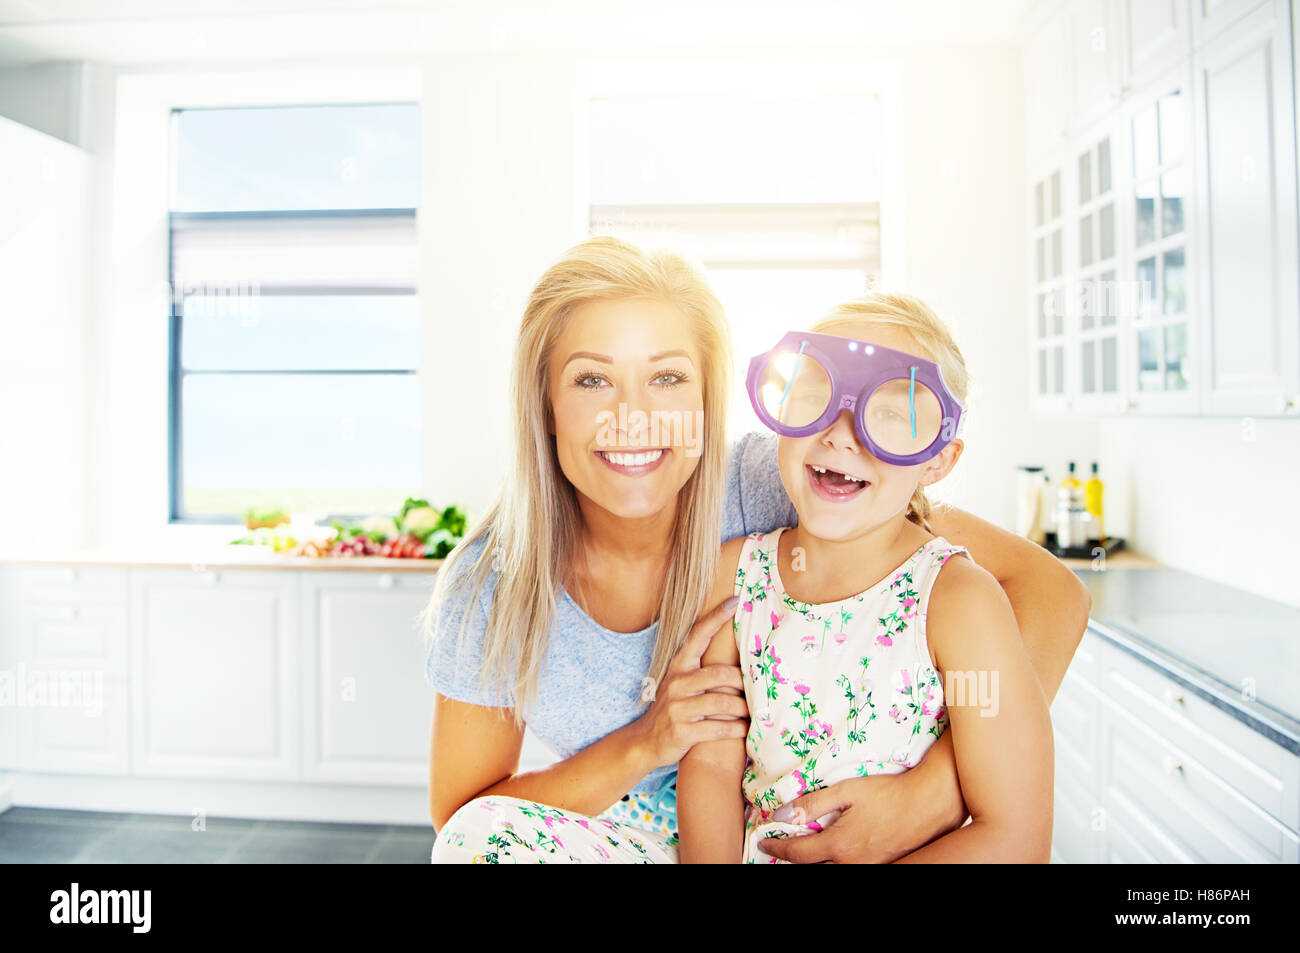 Vivacious little girl in outsized plastic glasses laughing merrily for the camera as she is hugged by her loving - Stock Image